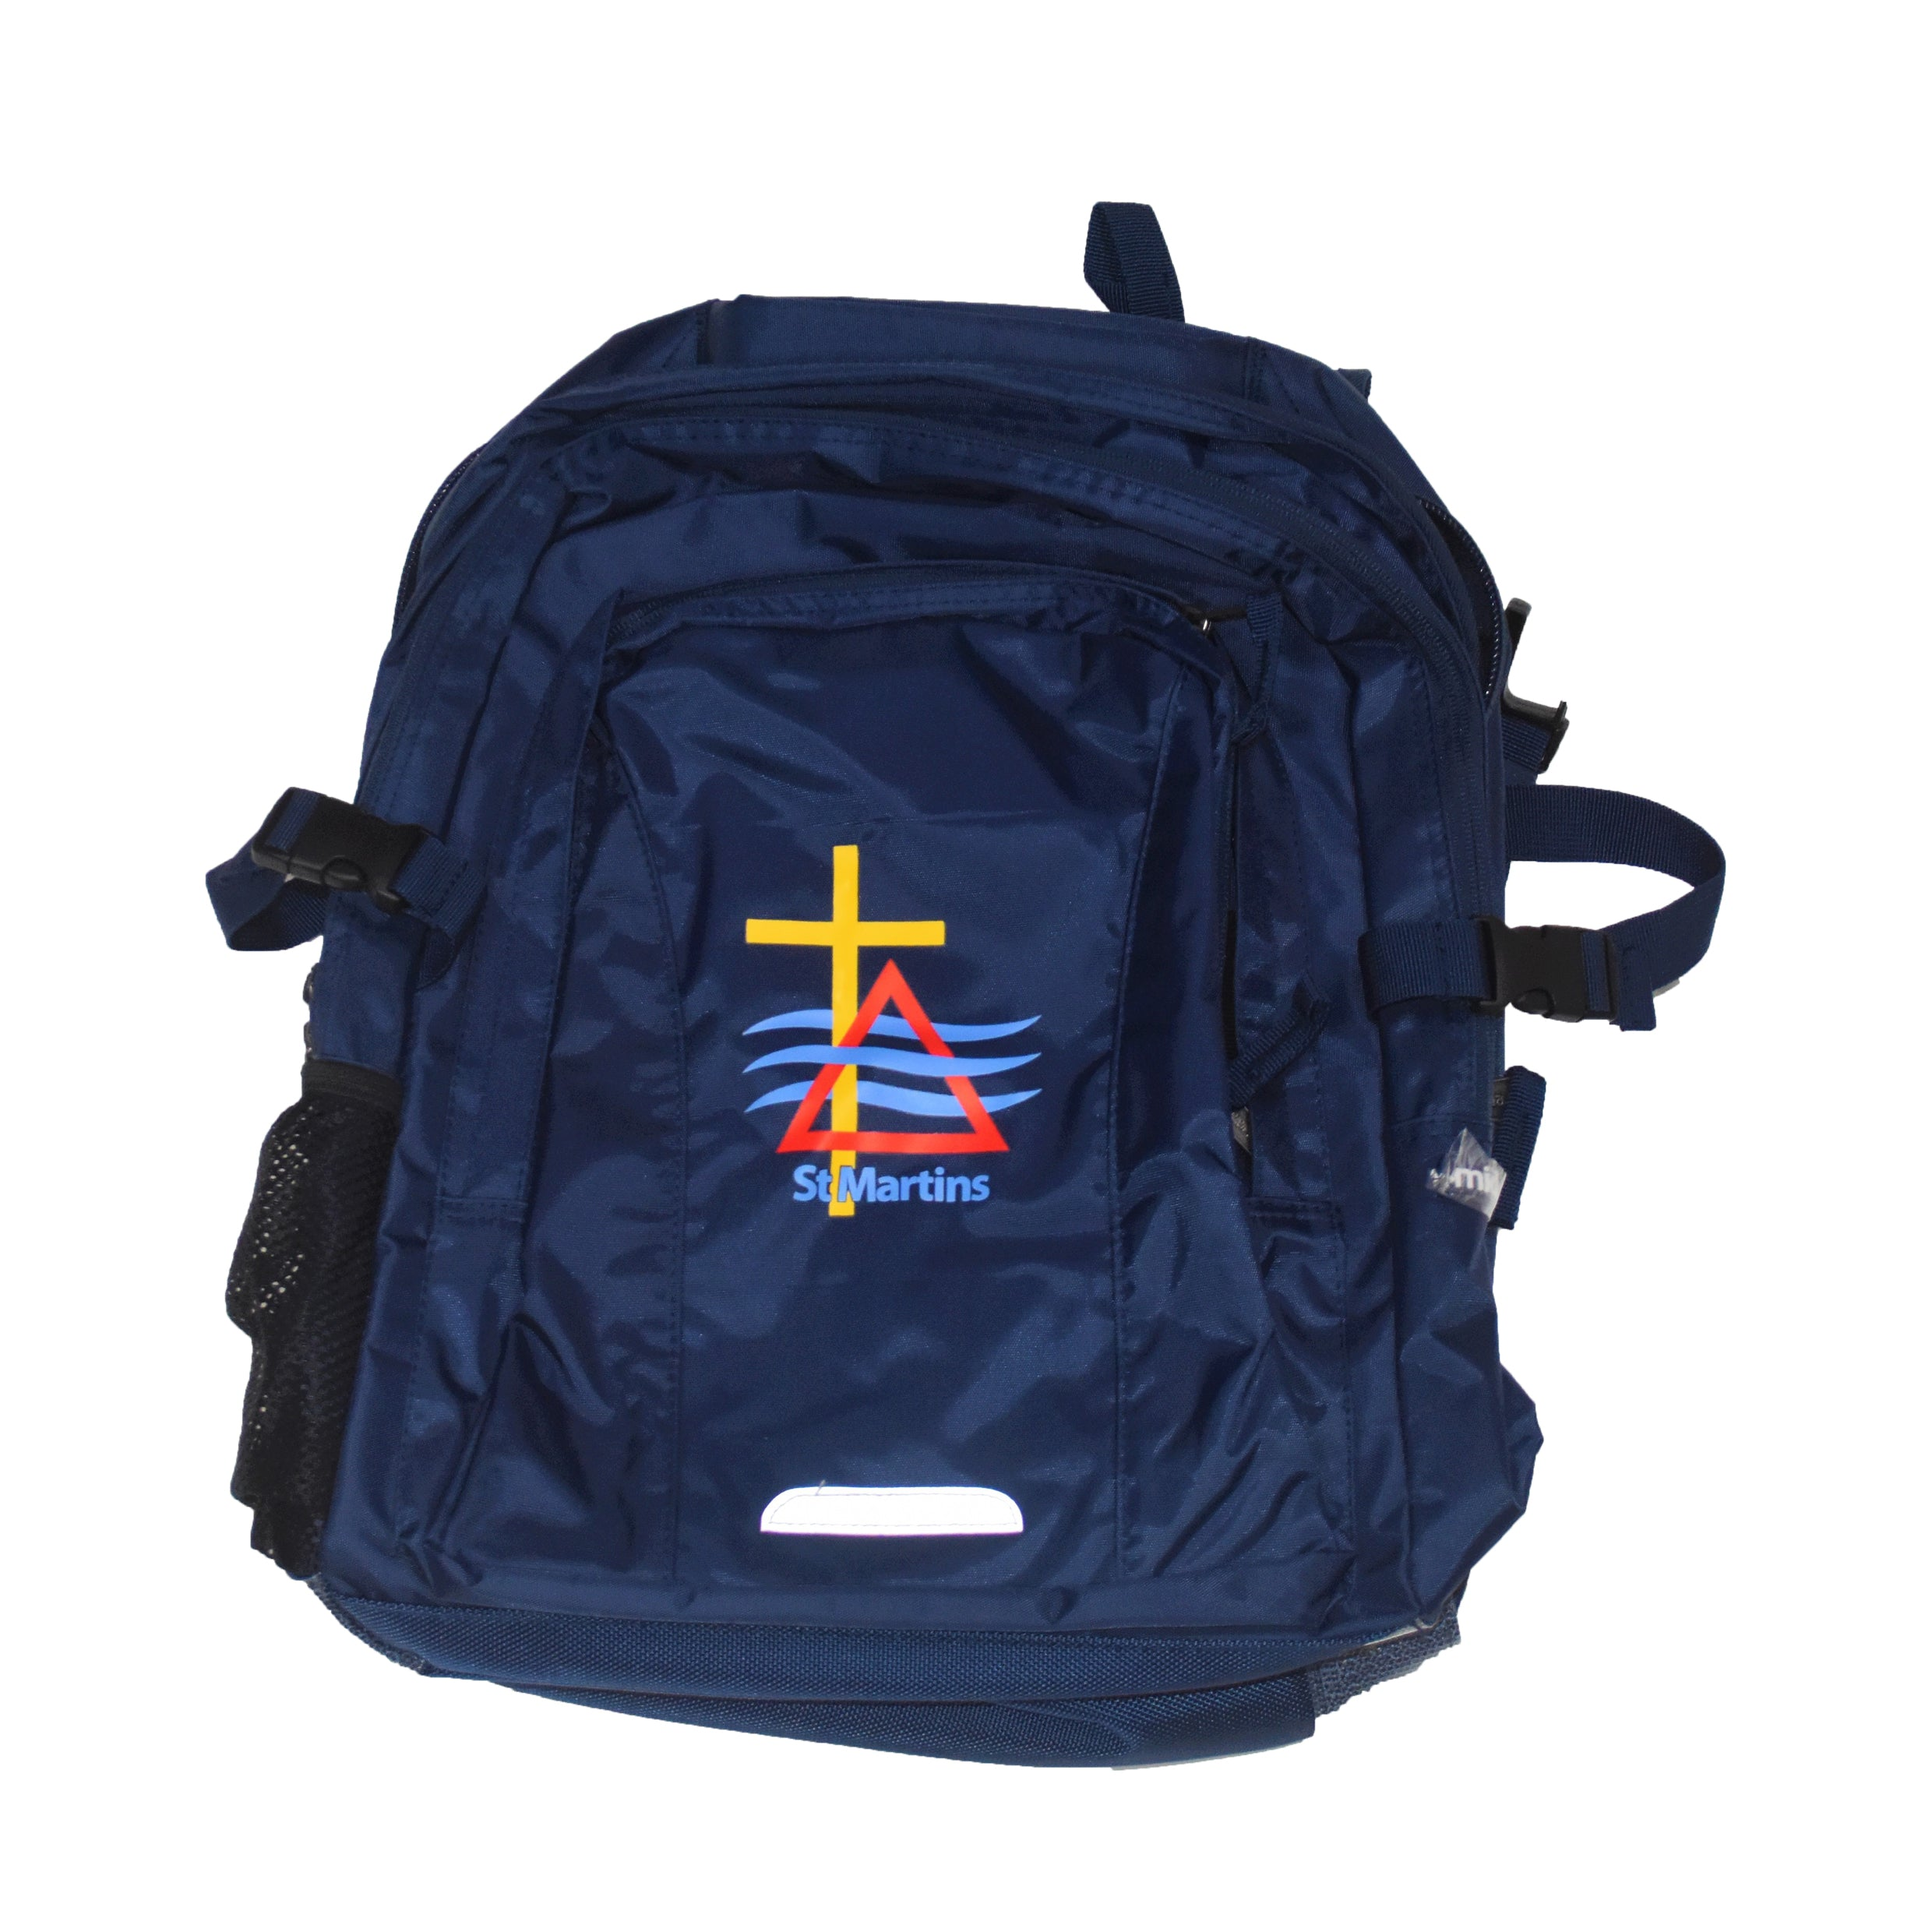 SMLC Backpack